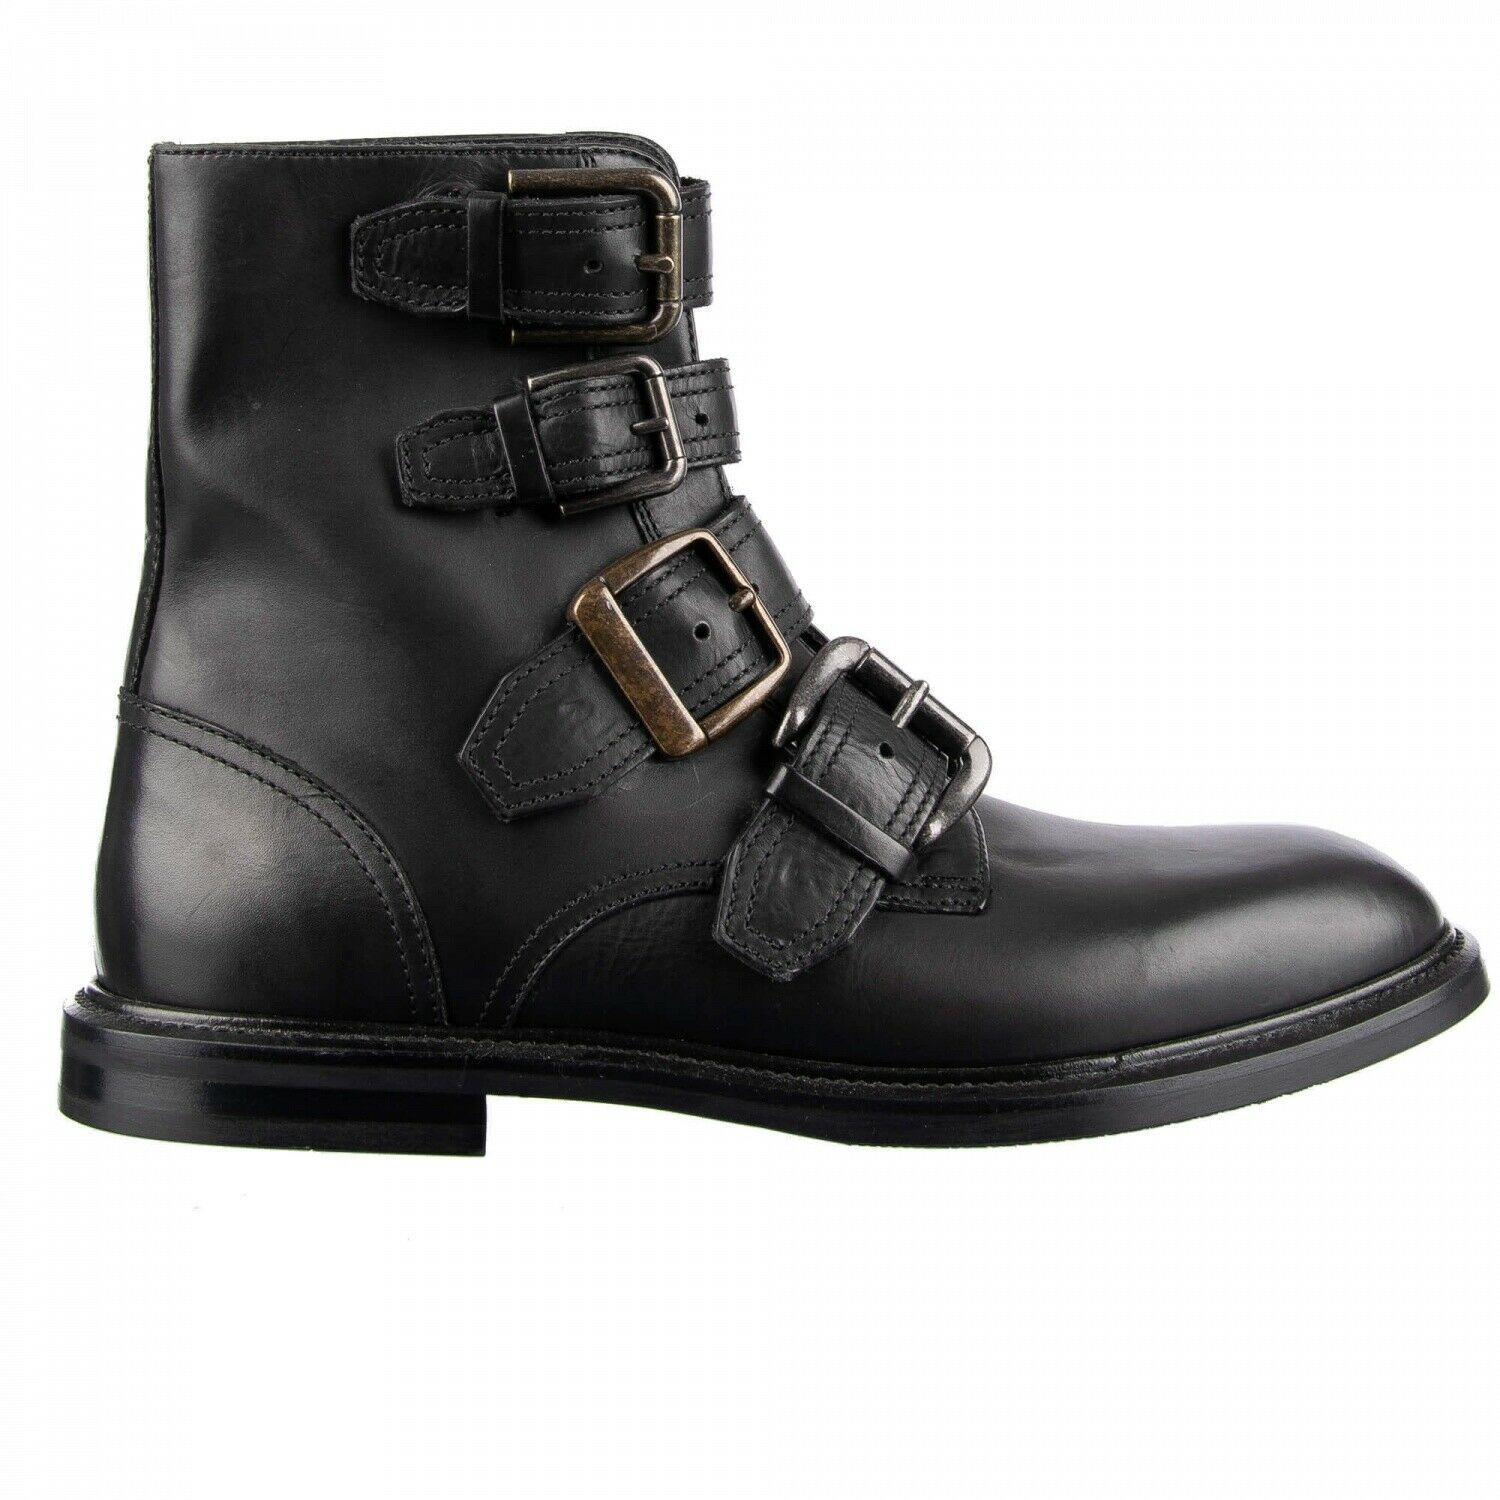 Dolce & Gabbana Runway Ankle Boots with Buckles Marsala Black 09049